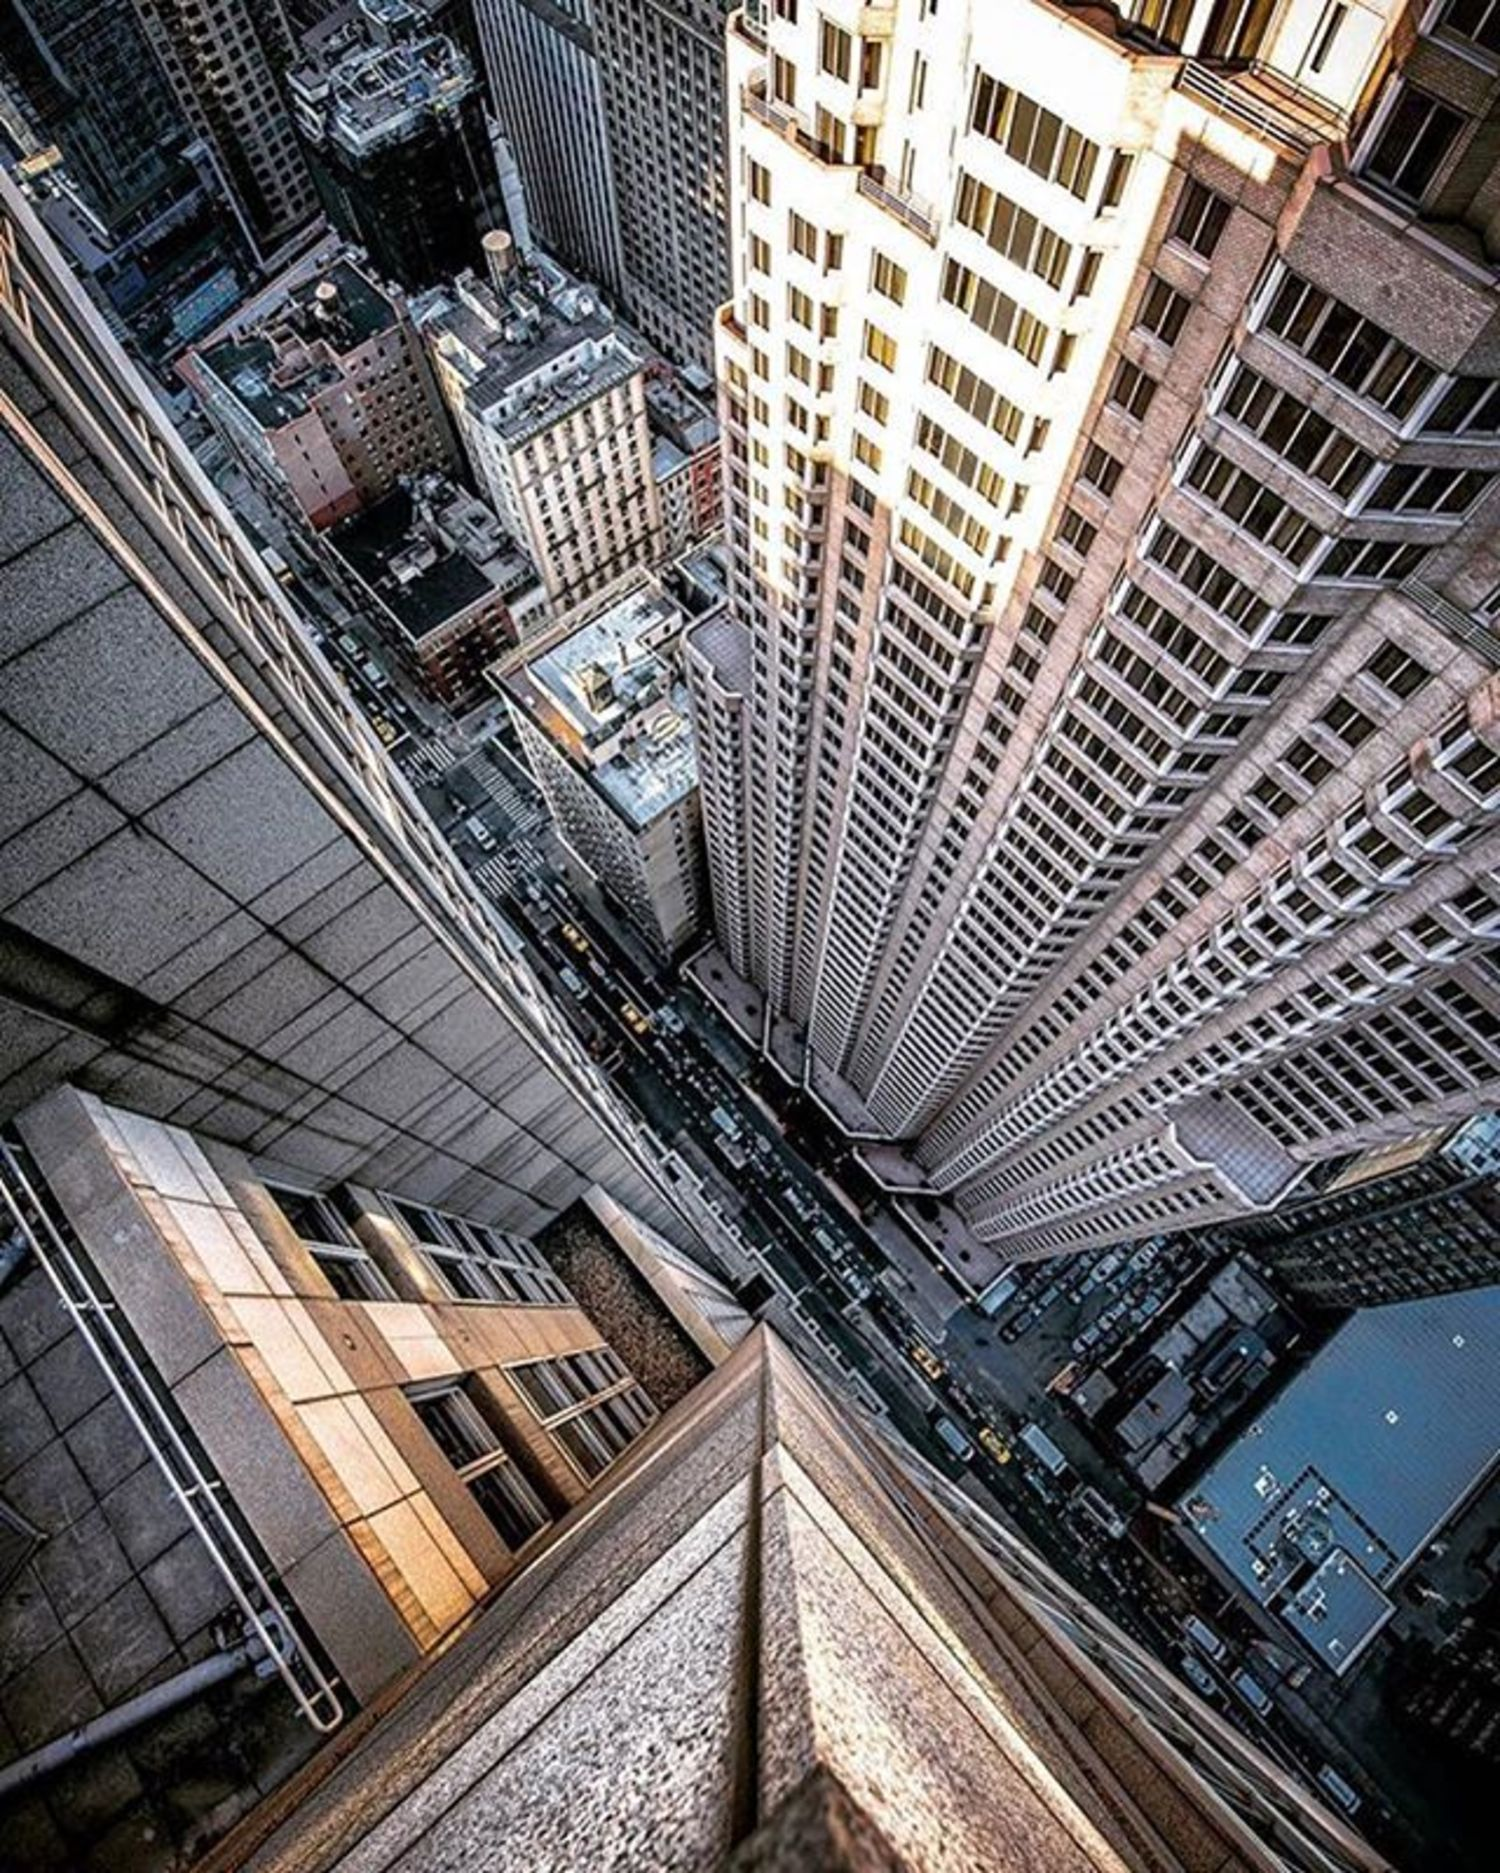 Photo via @lightsensitivity  #viewingnyc